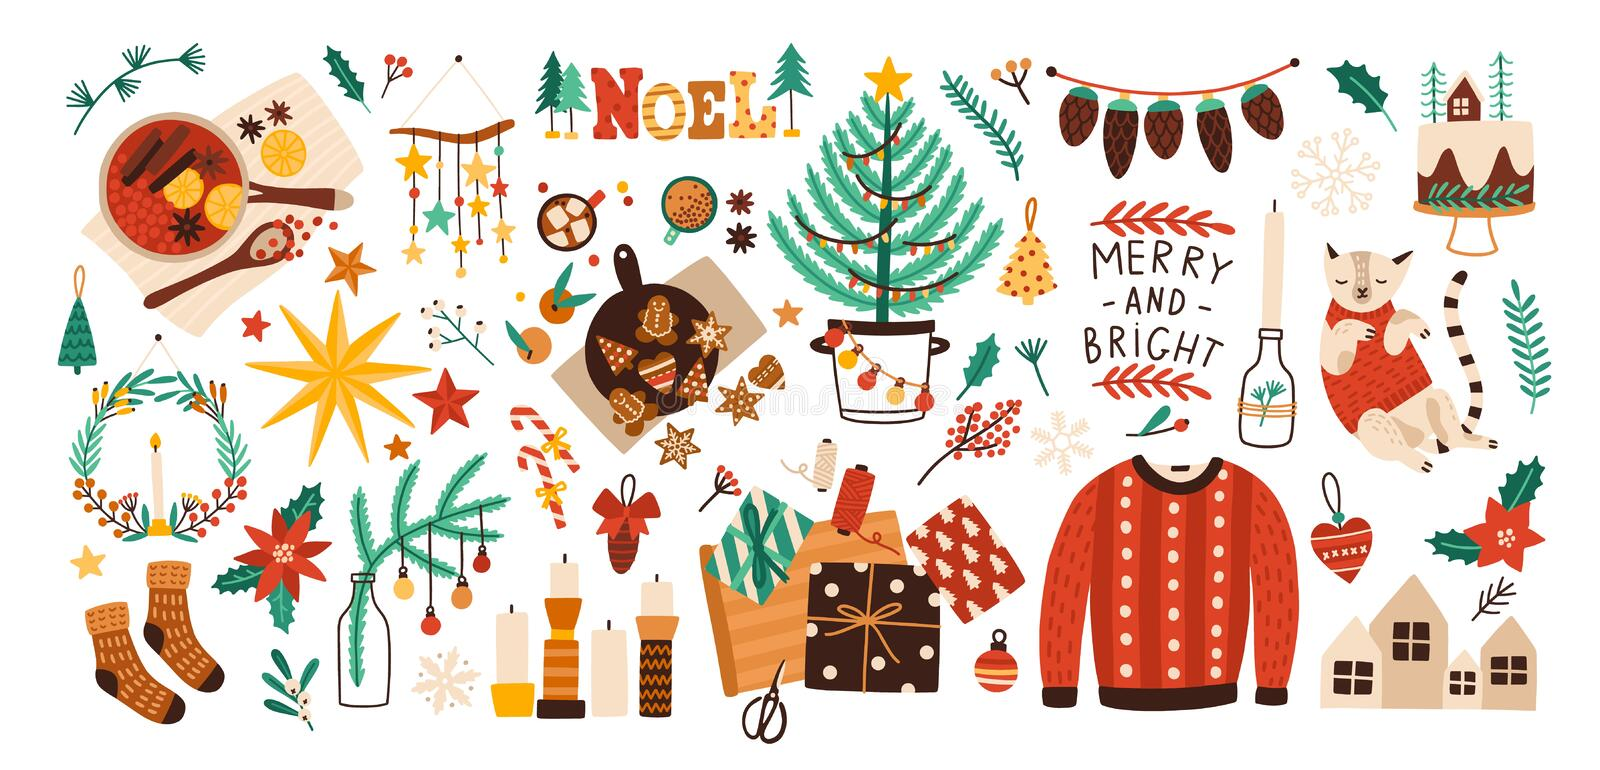 Collection of Christmas decorations, holiday gifts, winter knitted woolen clothes, mulled wine and ginger bread isolated. On white background. Colorful vector vector illustration